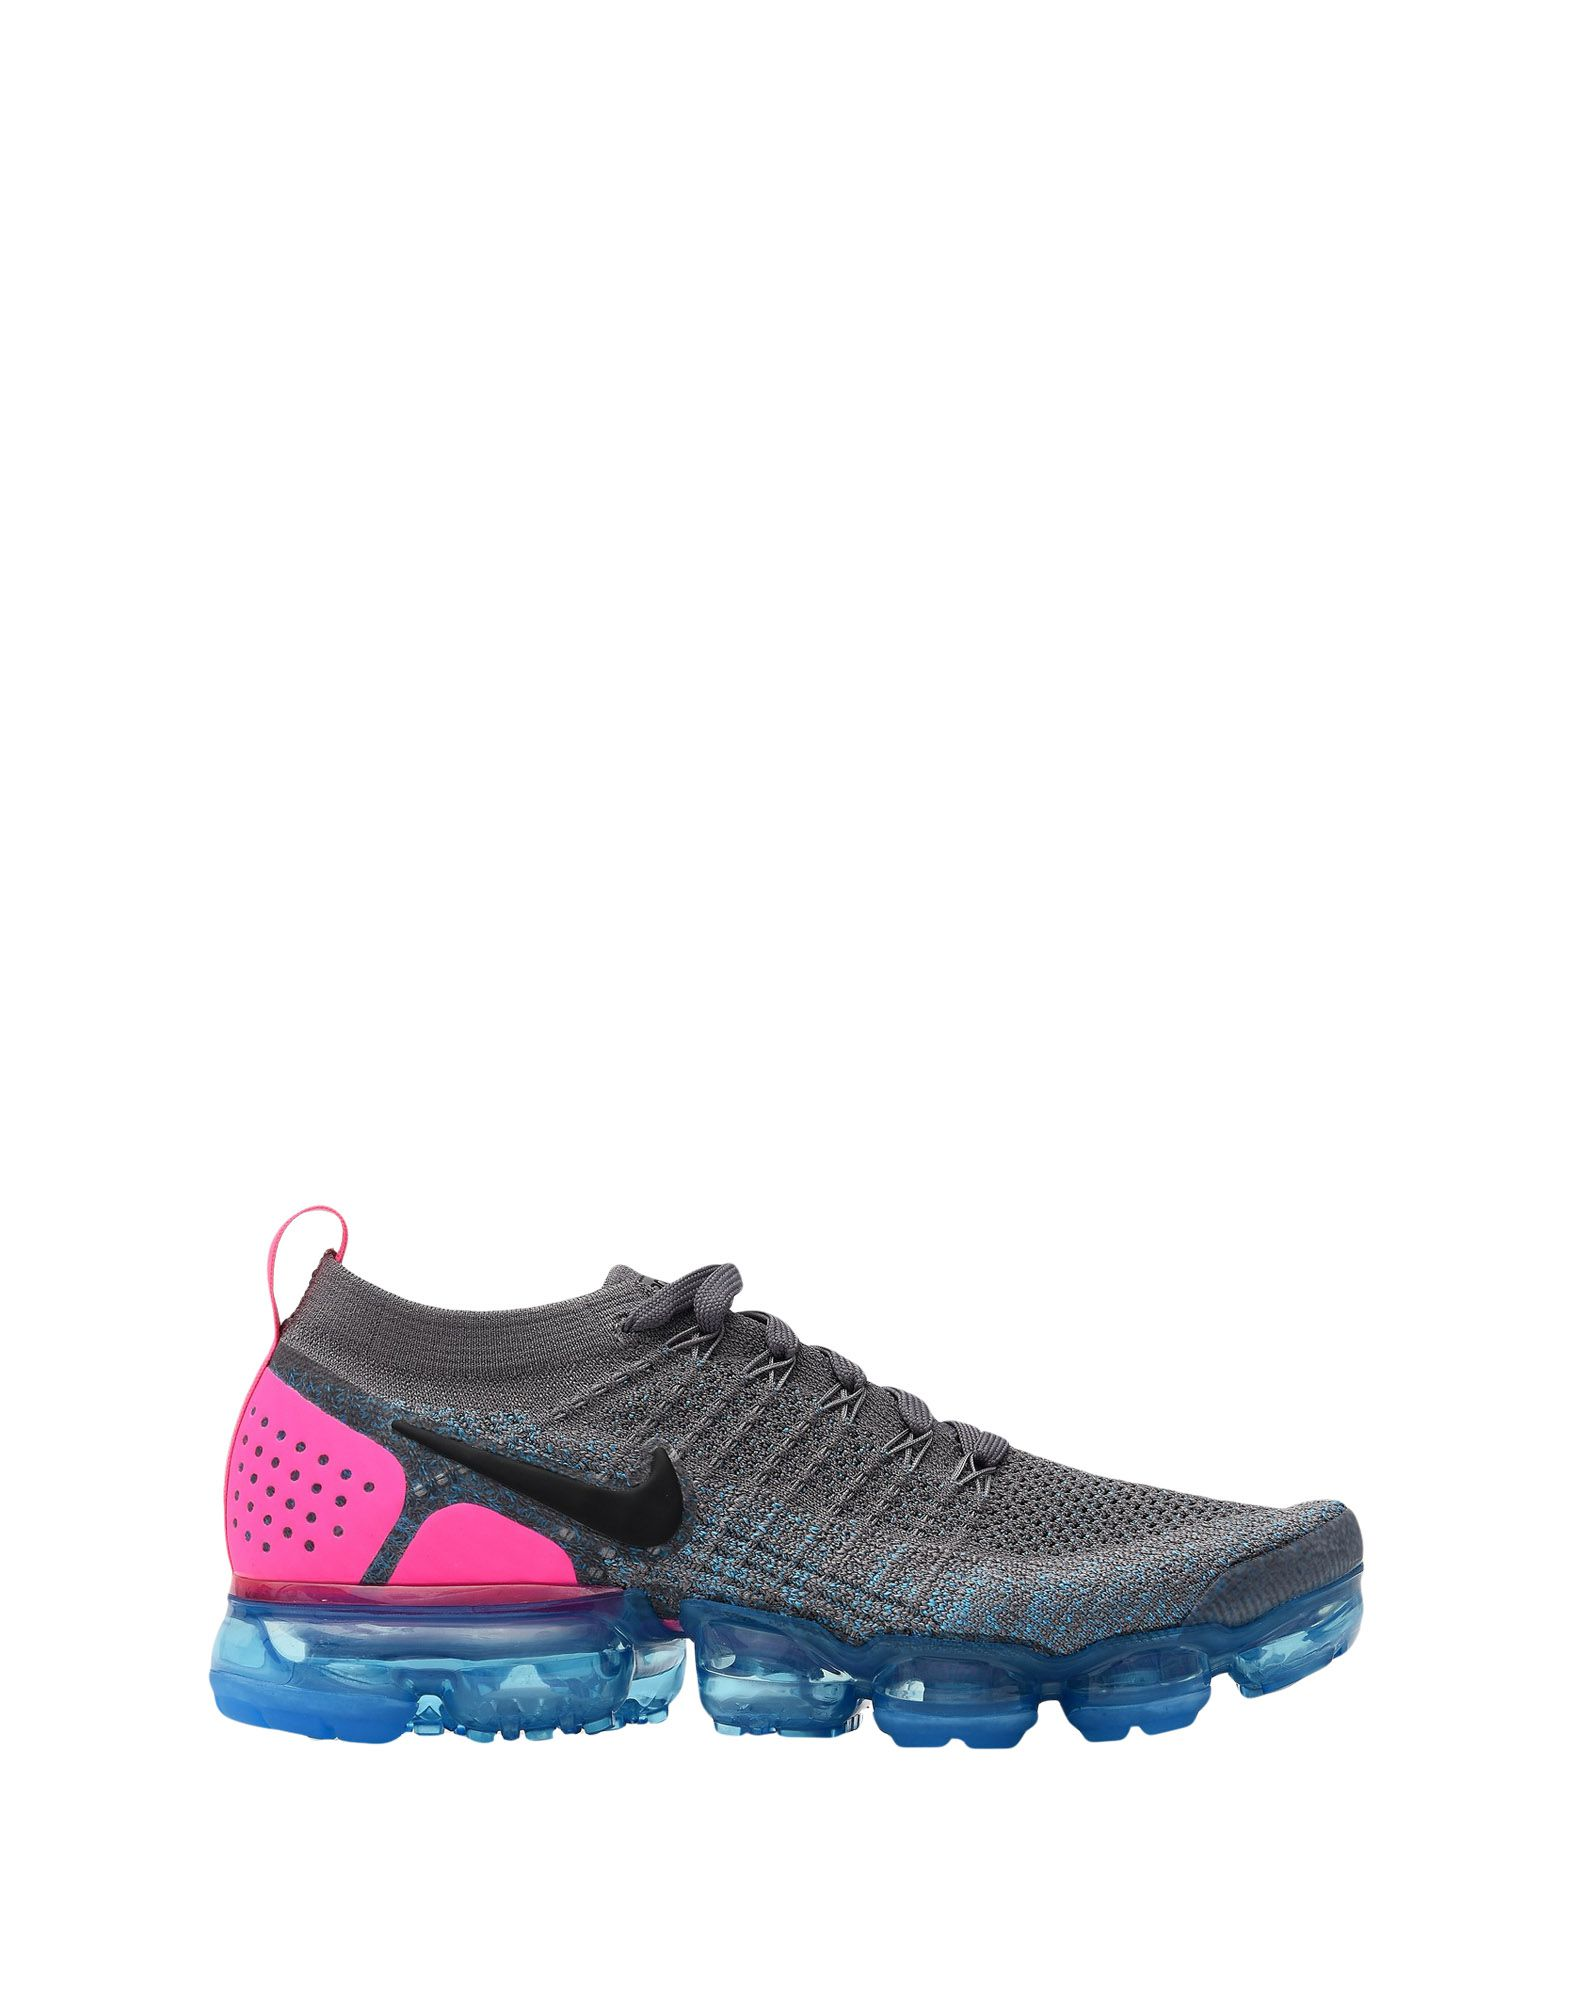 Nike  Air Vapormax Flyknit strapazierfähige 2  11483102DAGut aussehende strapazierfähige Flyknit Schuhe 492531